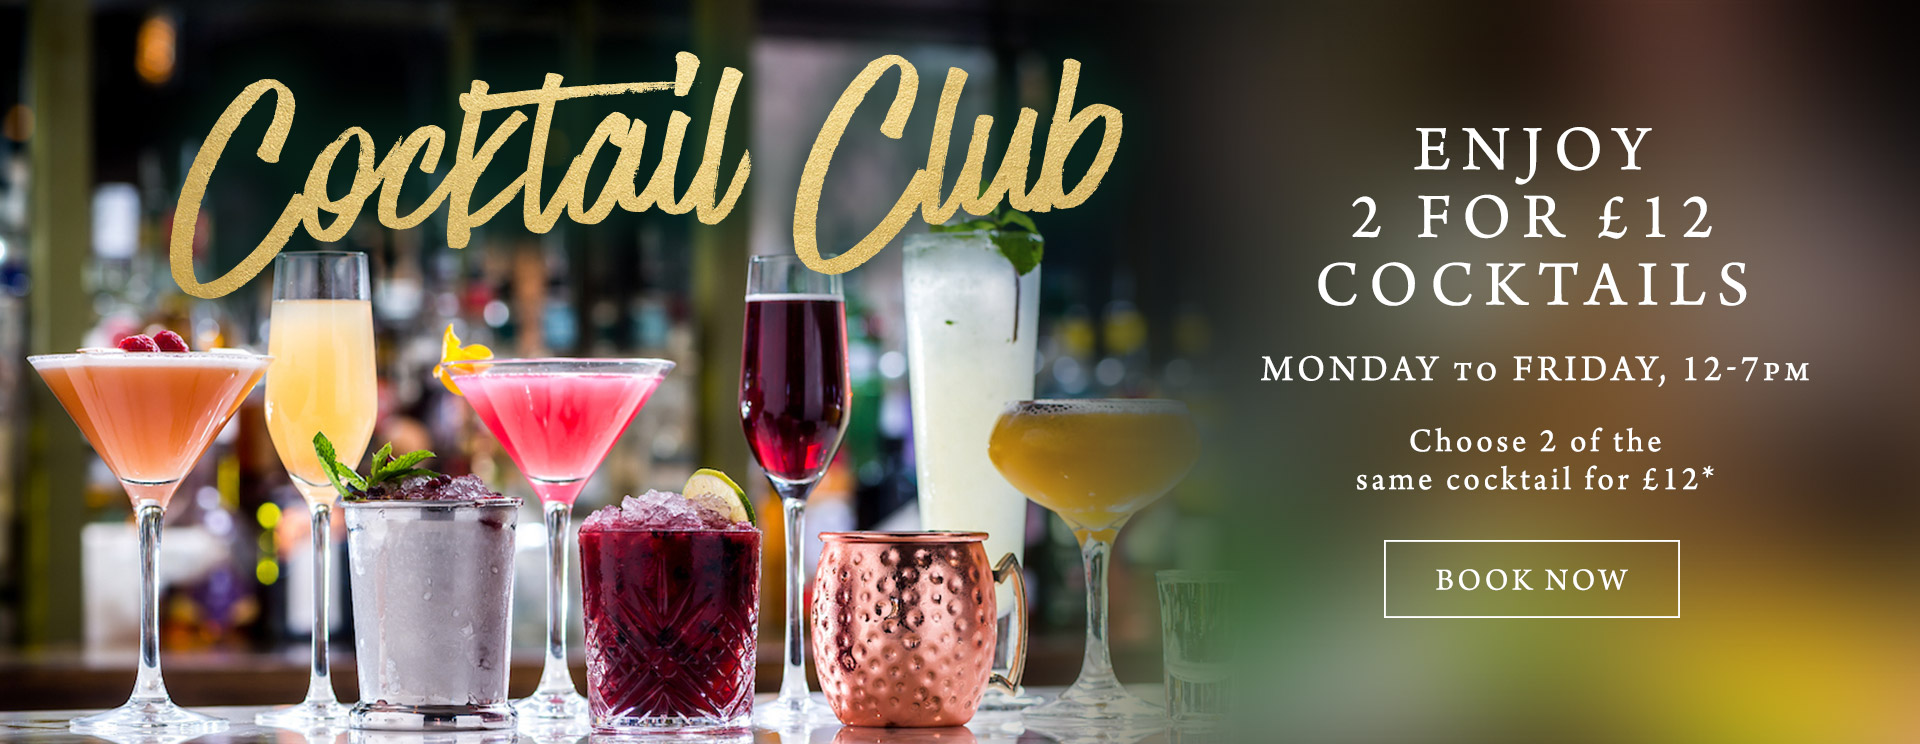 2 for £12 cocktails at The Derby Arms